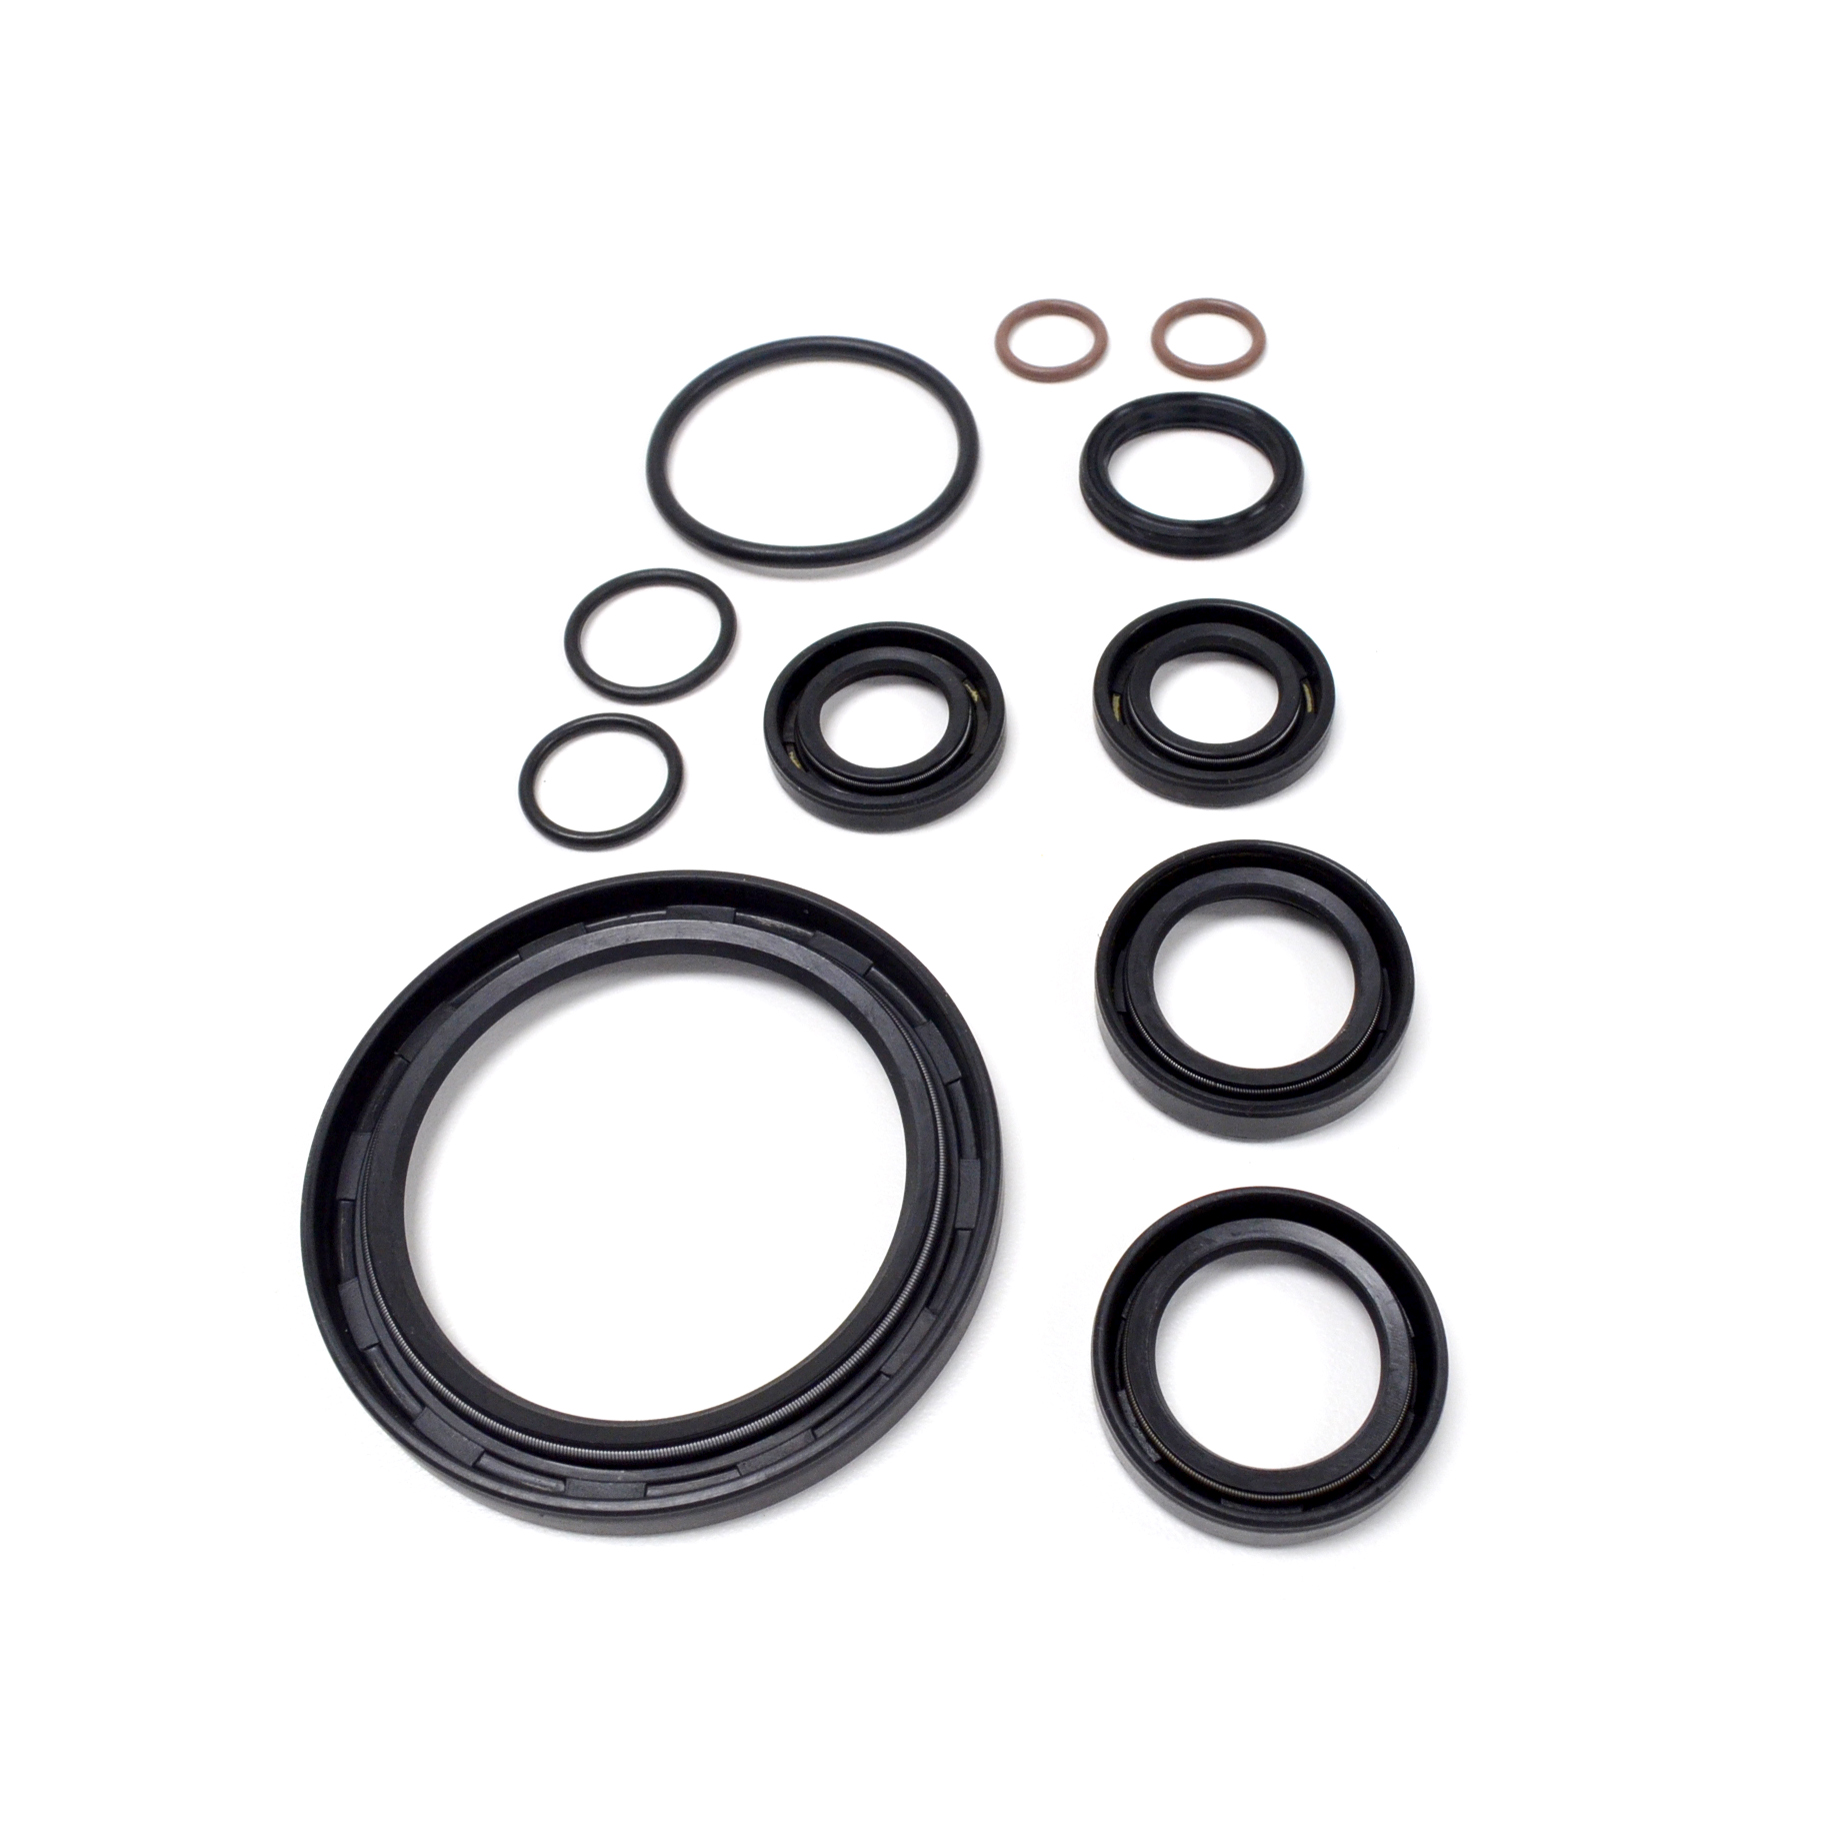 Triumph 650 750 T120 T140 Tr7 5 Speed Engine Seal Kit